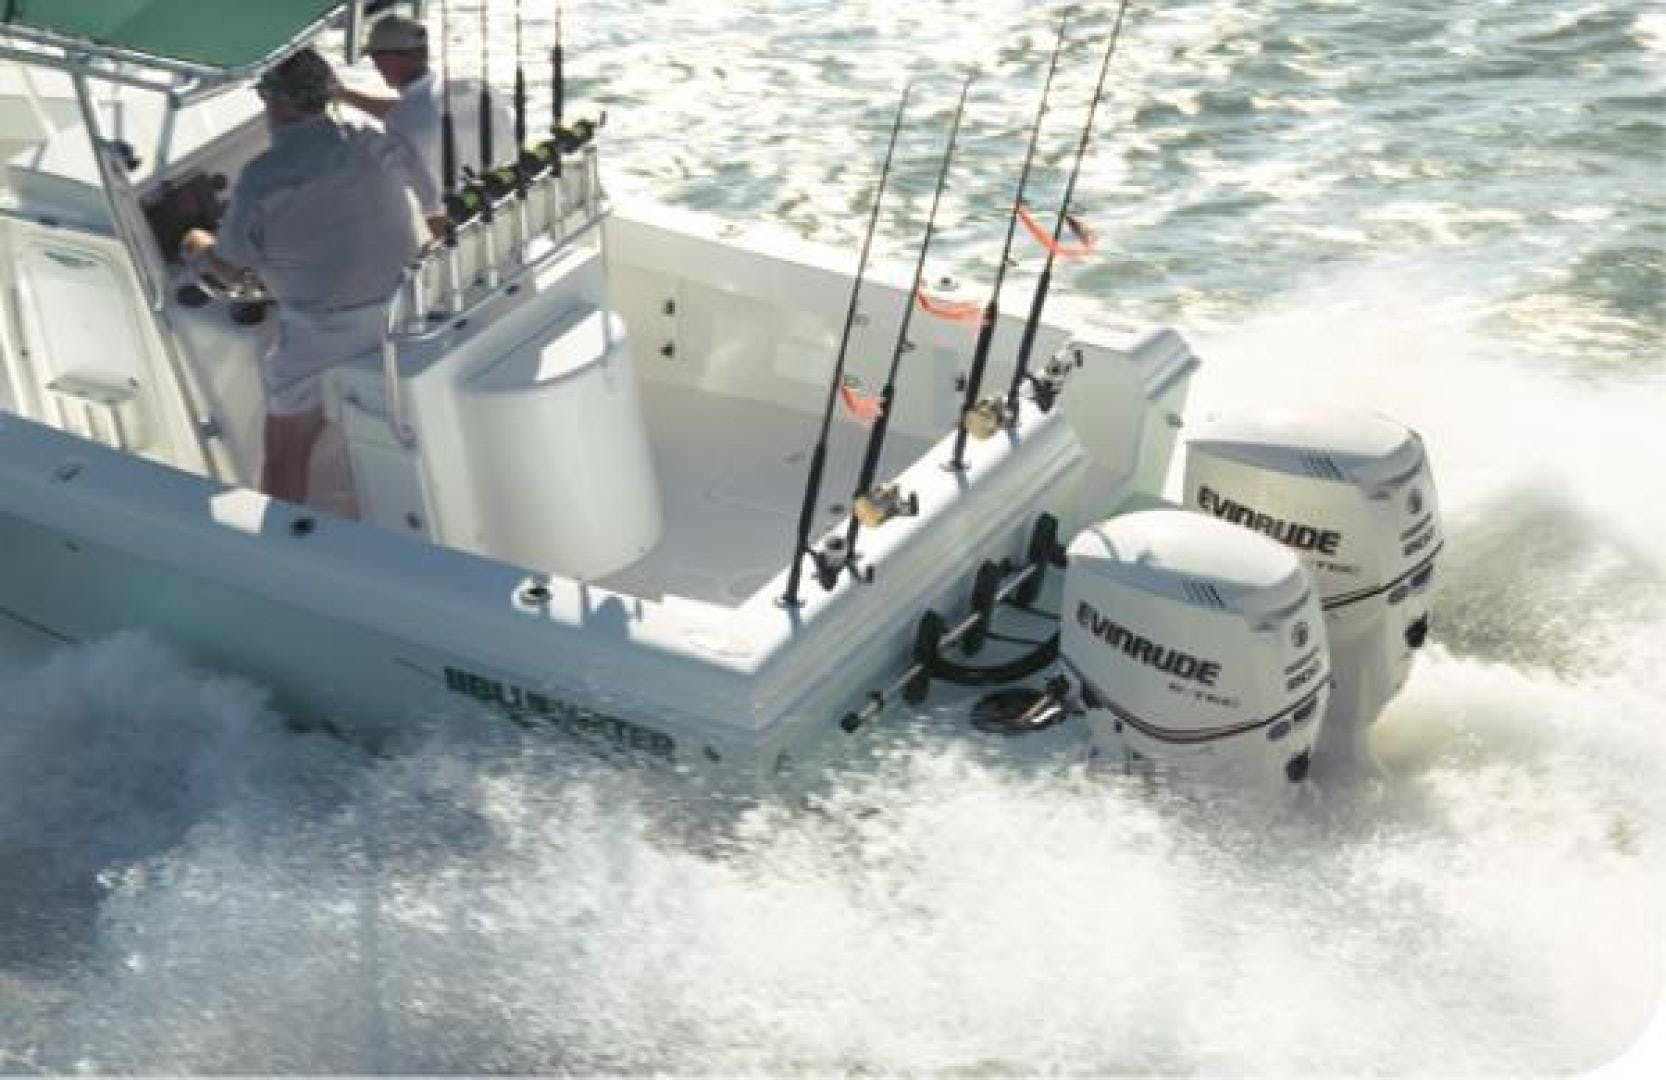 2021 Bluewater Sportfishing 22' 23t Bluewater Sportfishing 23t | Picture 6 of 7